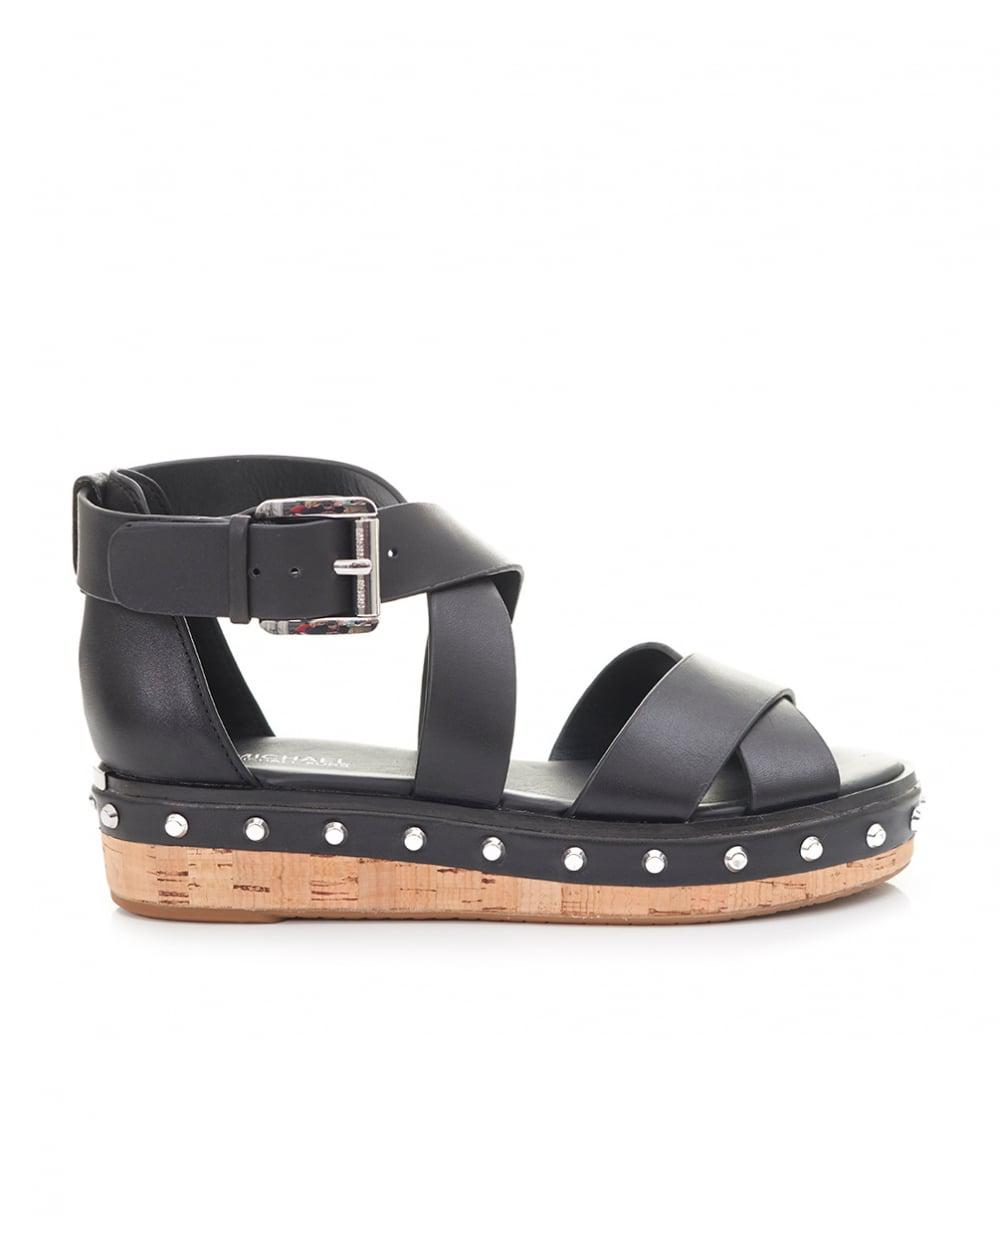 sandal platform image from chunky psyche women ash footwear stud uk